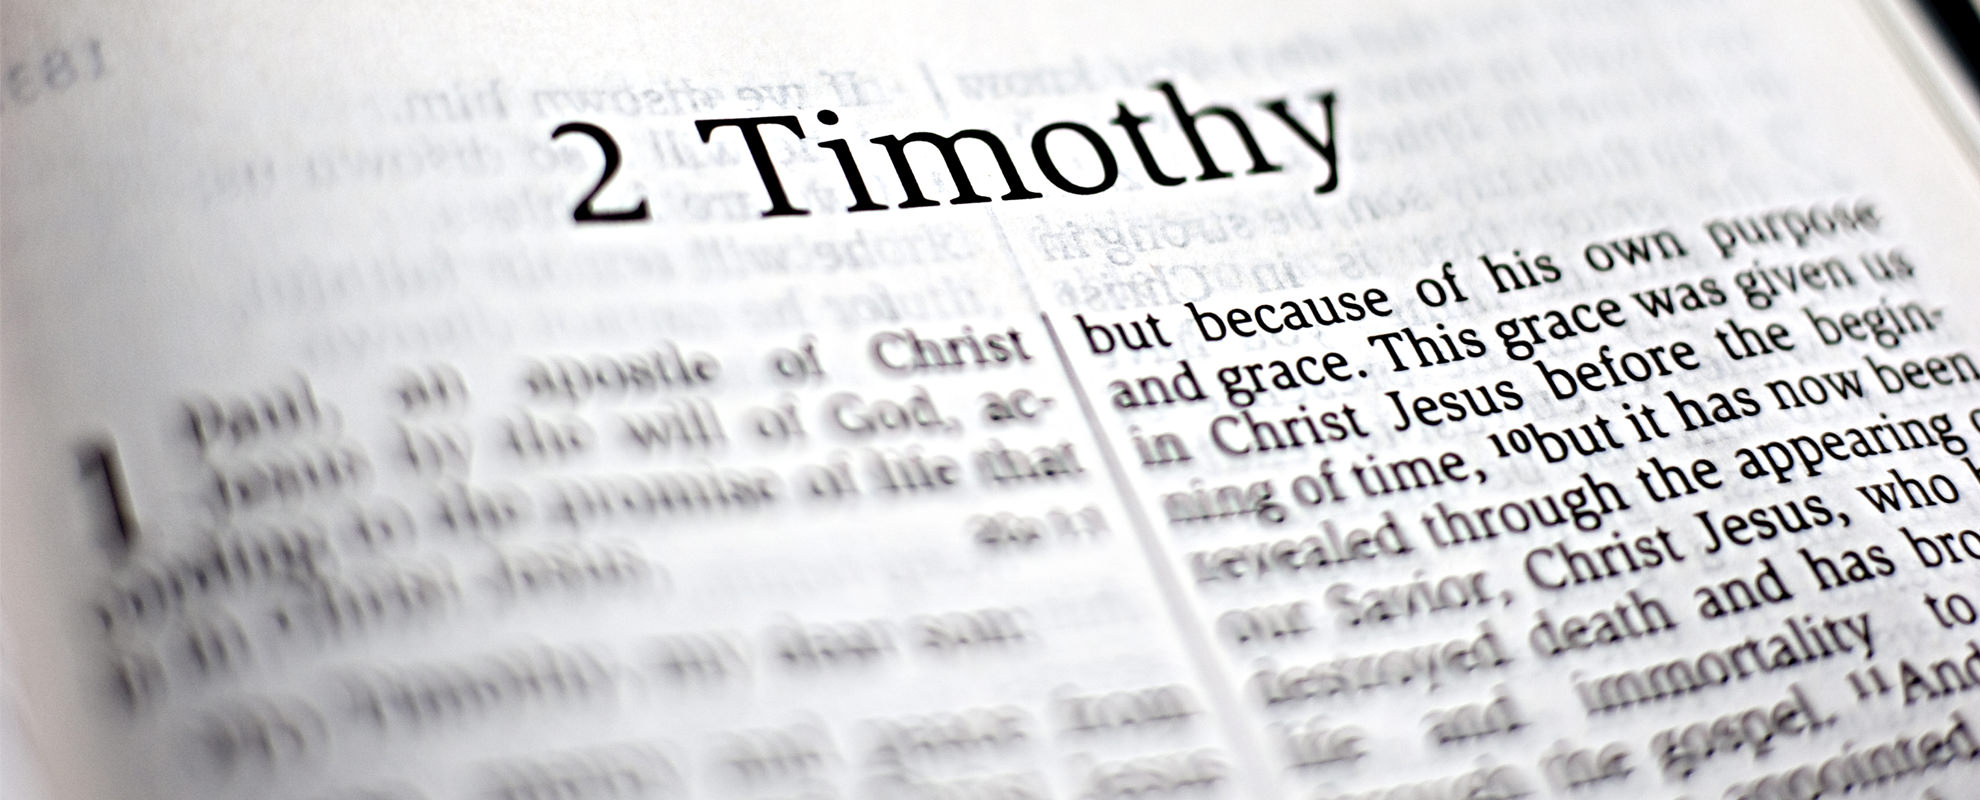 2 Timothy 11 7 A Spirit Of Power Love And Self Control